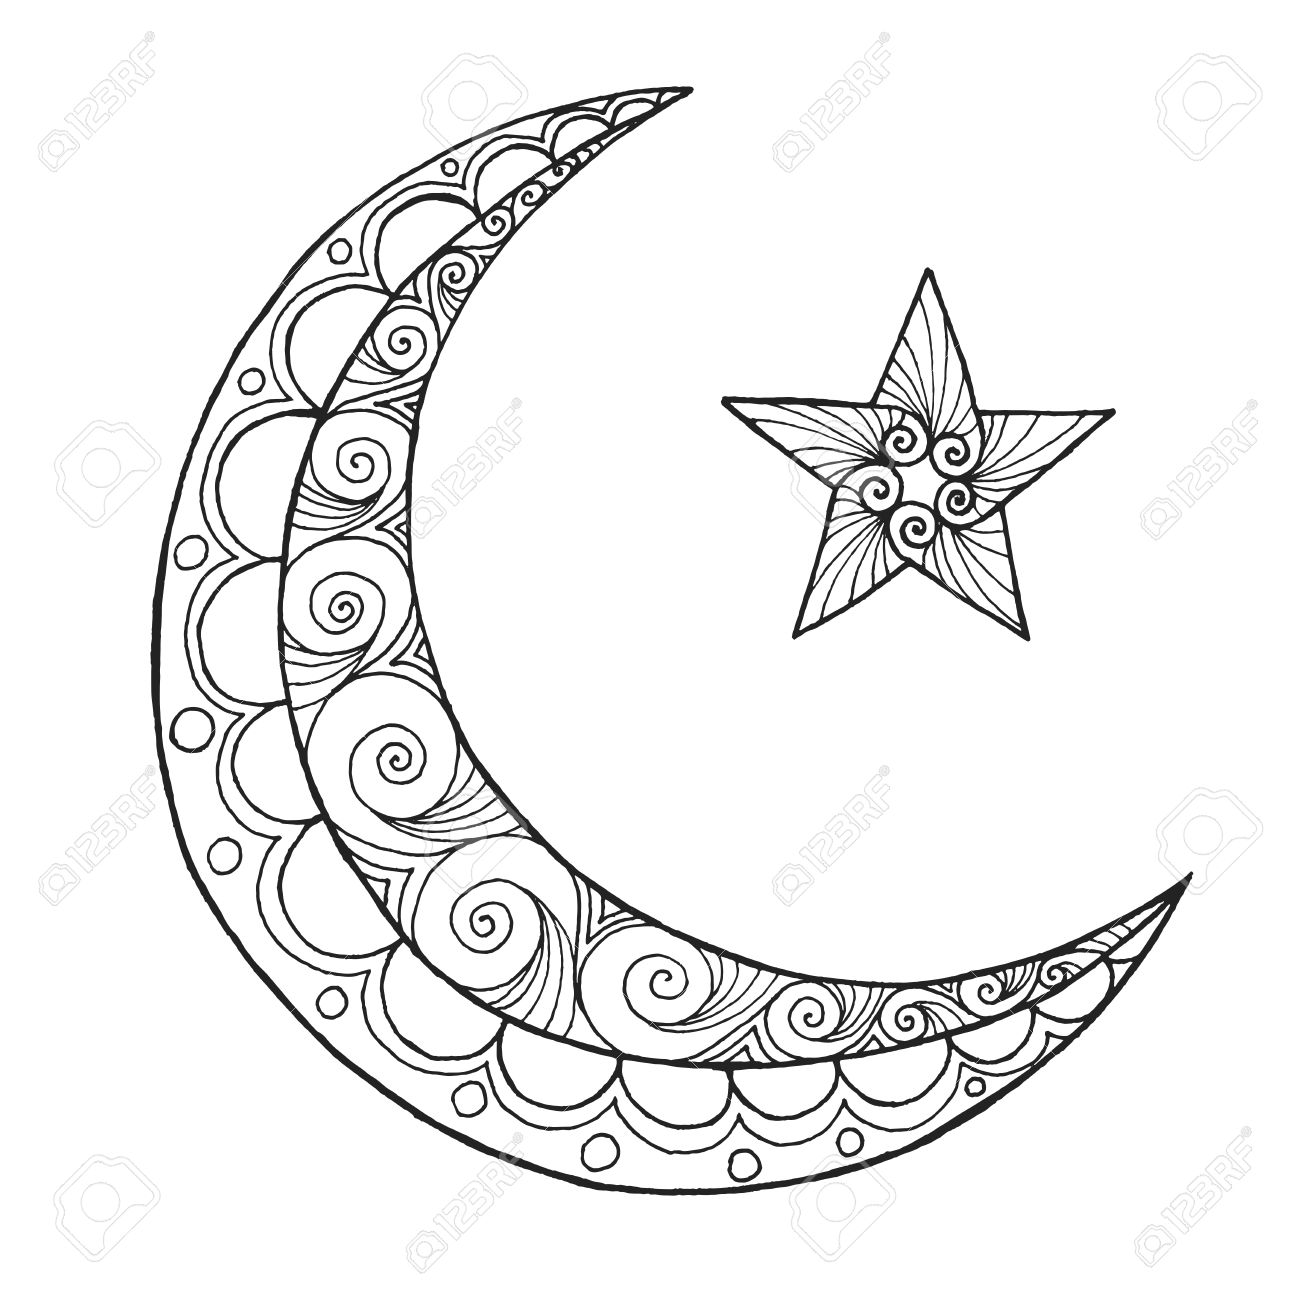 The Best Free Ramadan Drawing Images Download From 102